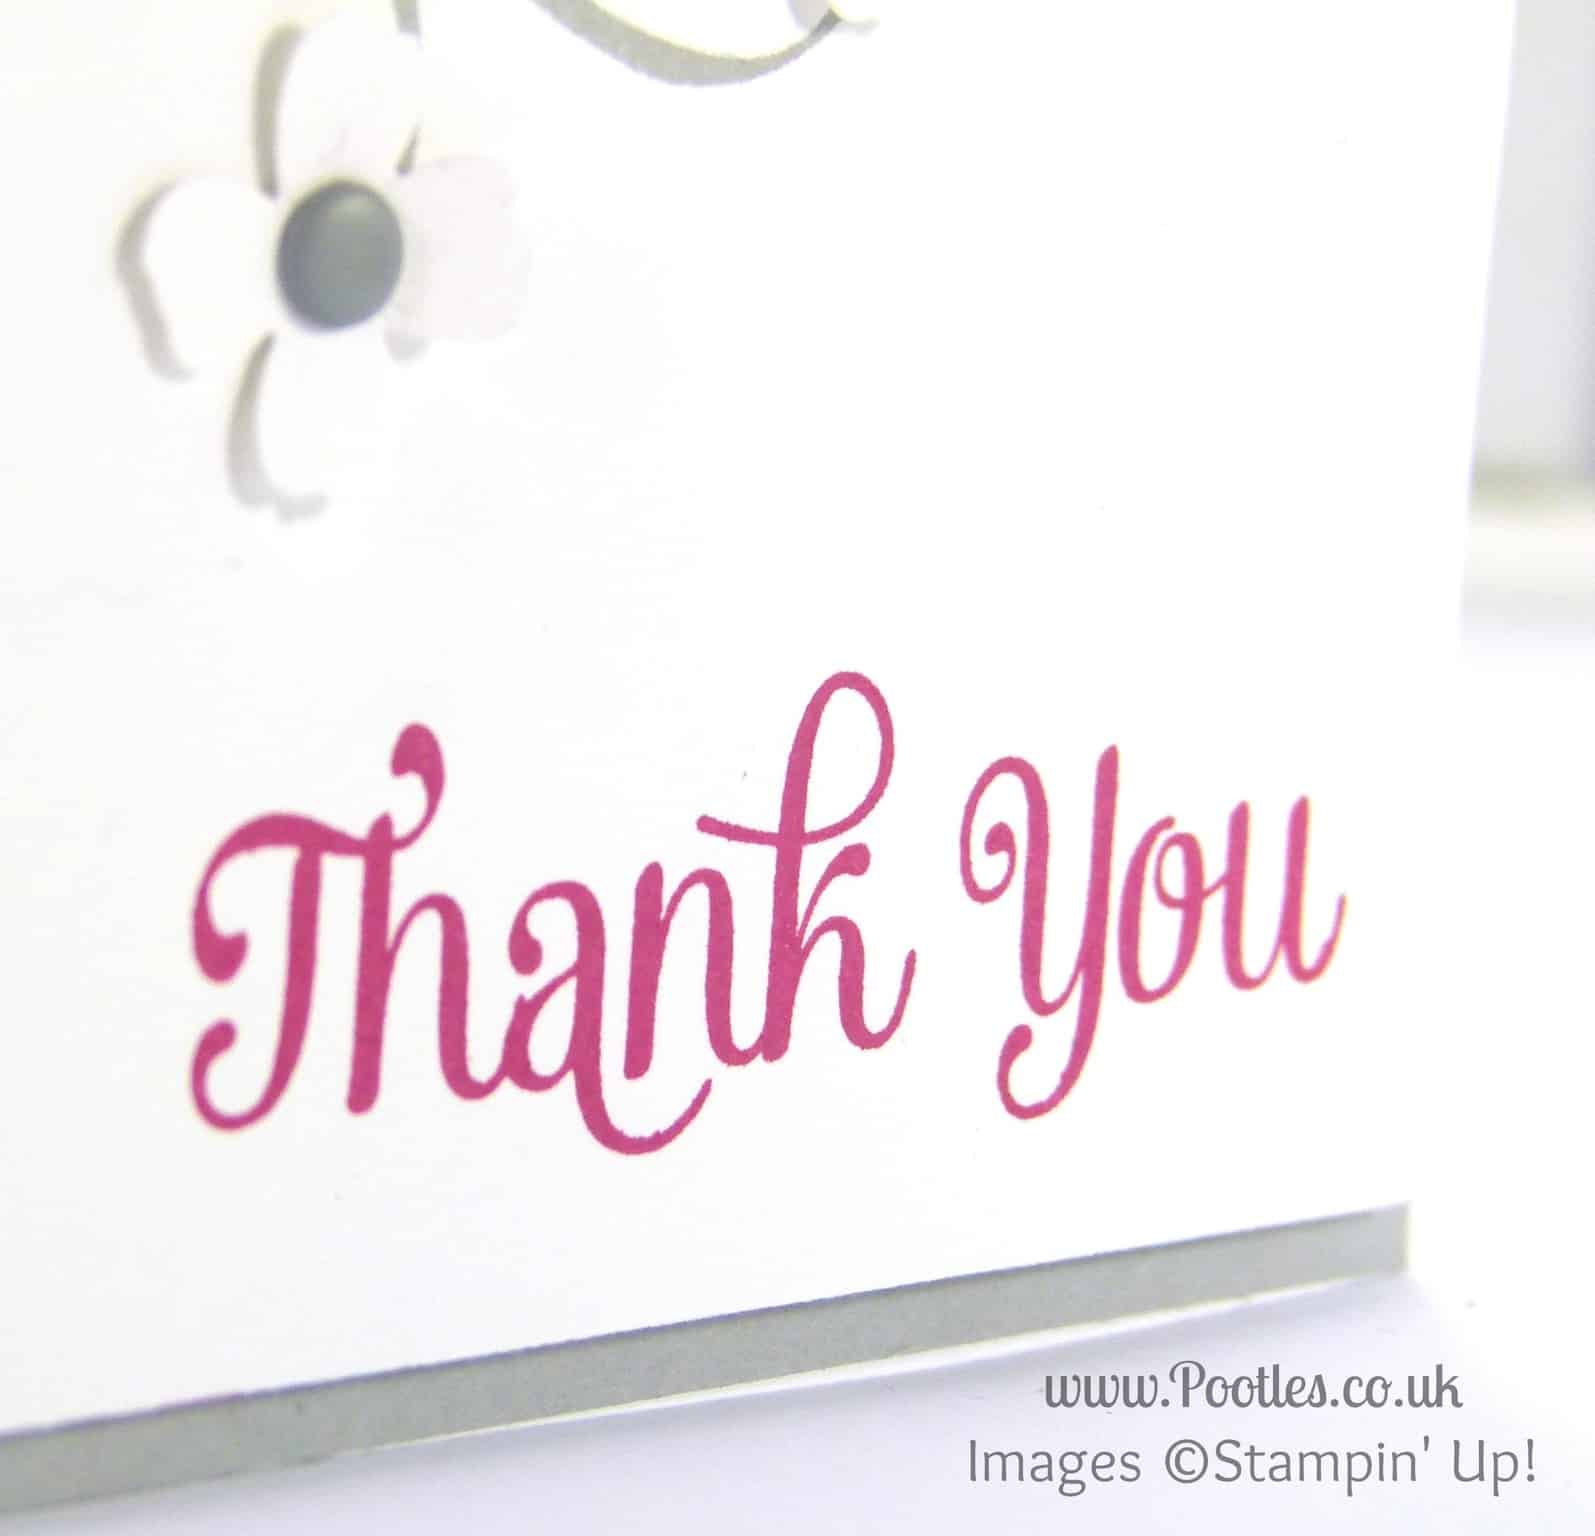 Stampin' Up! UK Independent Demonstrator Pootles - Thank You Four (!) Everything Eleanor! Four You Close Up